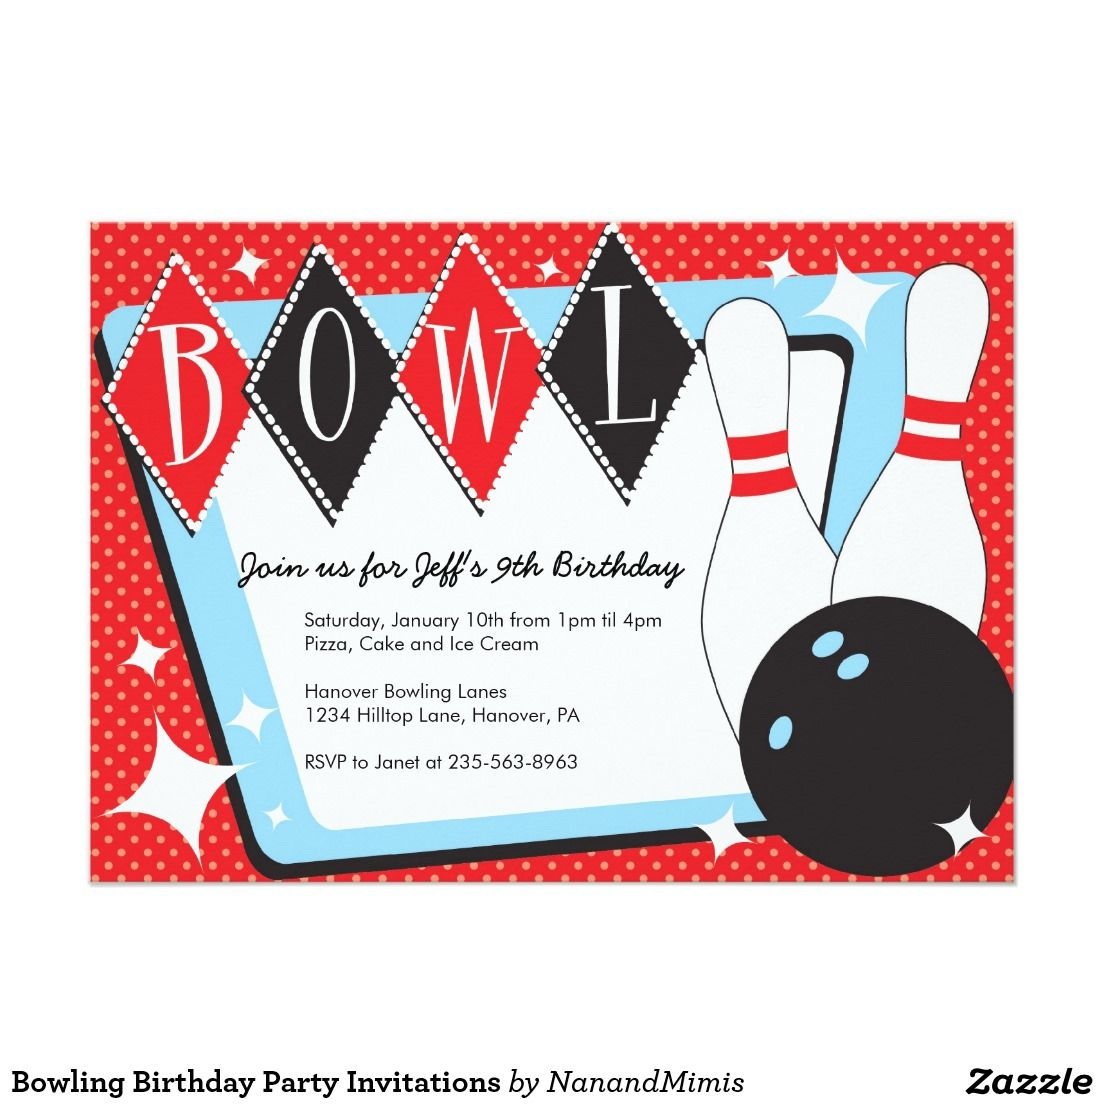 Bowling Birthday Party Invitations | bowling party | Pinterest ...